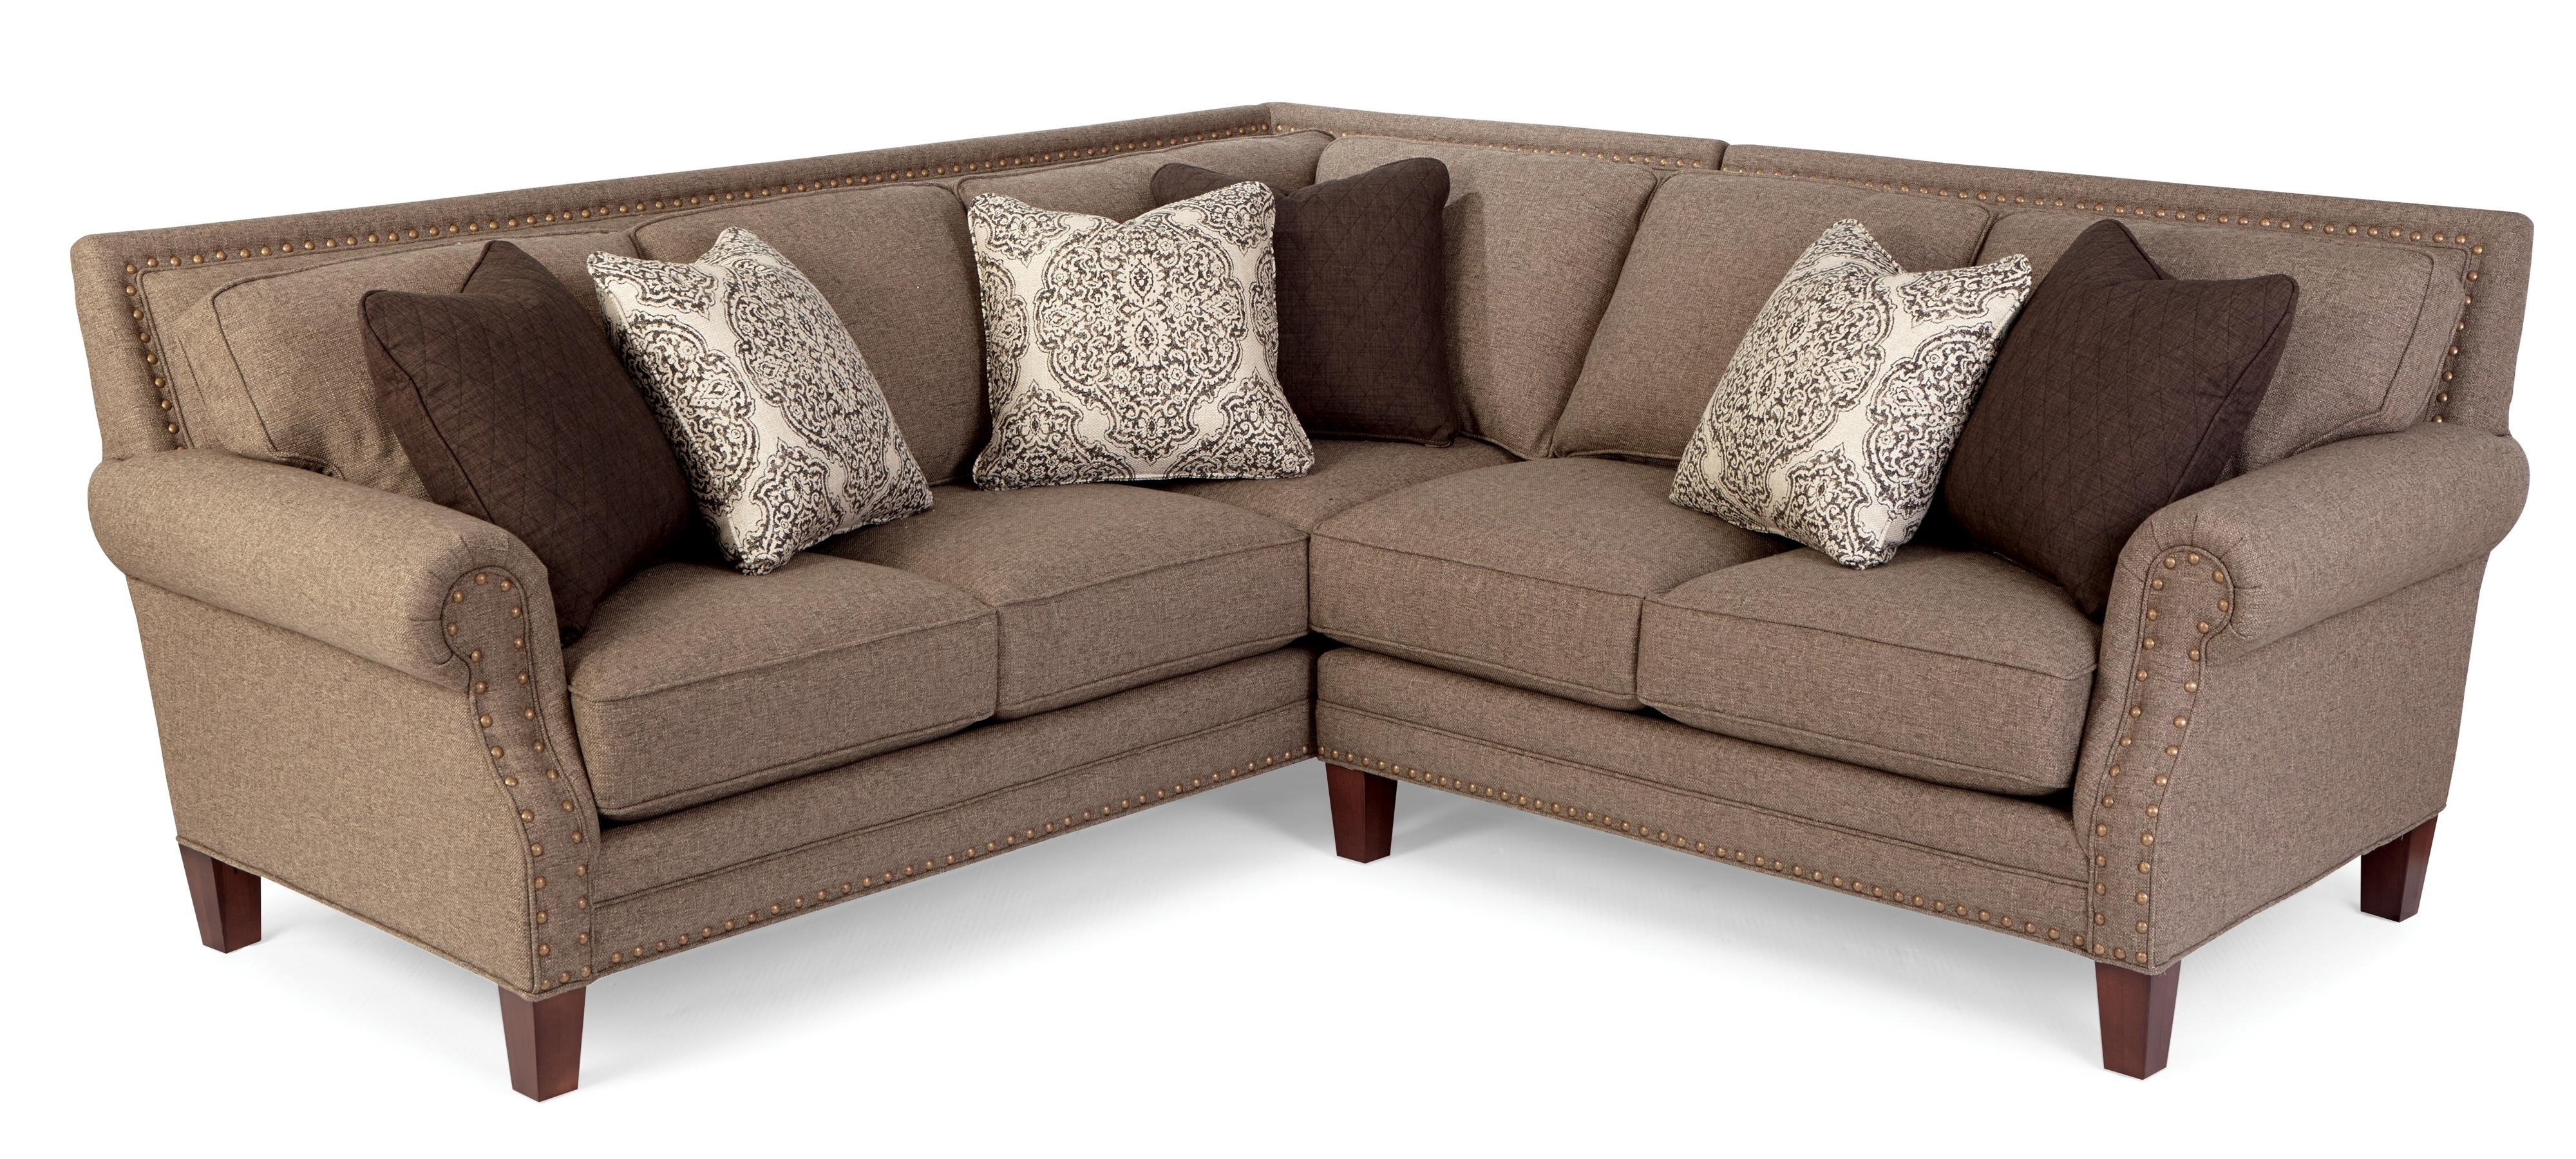 Two Piece Sectional Sofa With Rolled Arms And Light Brass Within Current Sectional Sofas With Nailheads (View 4 of 20)